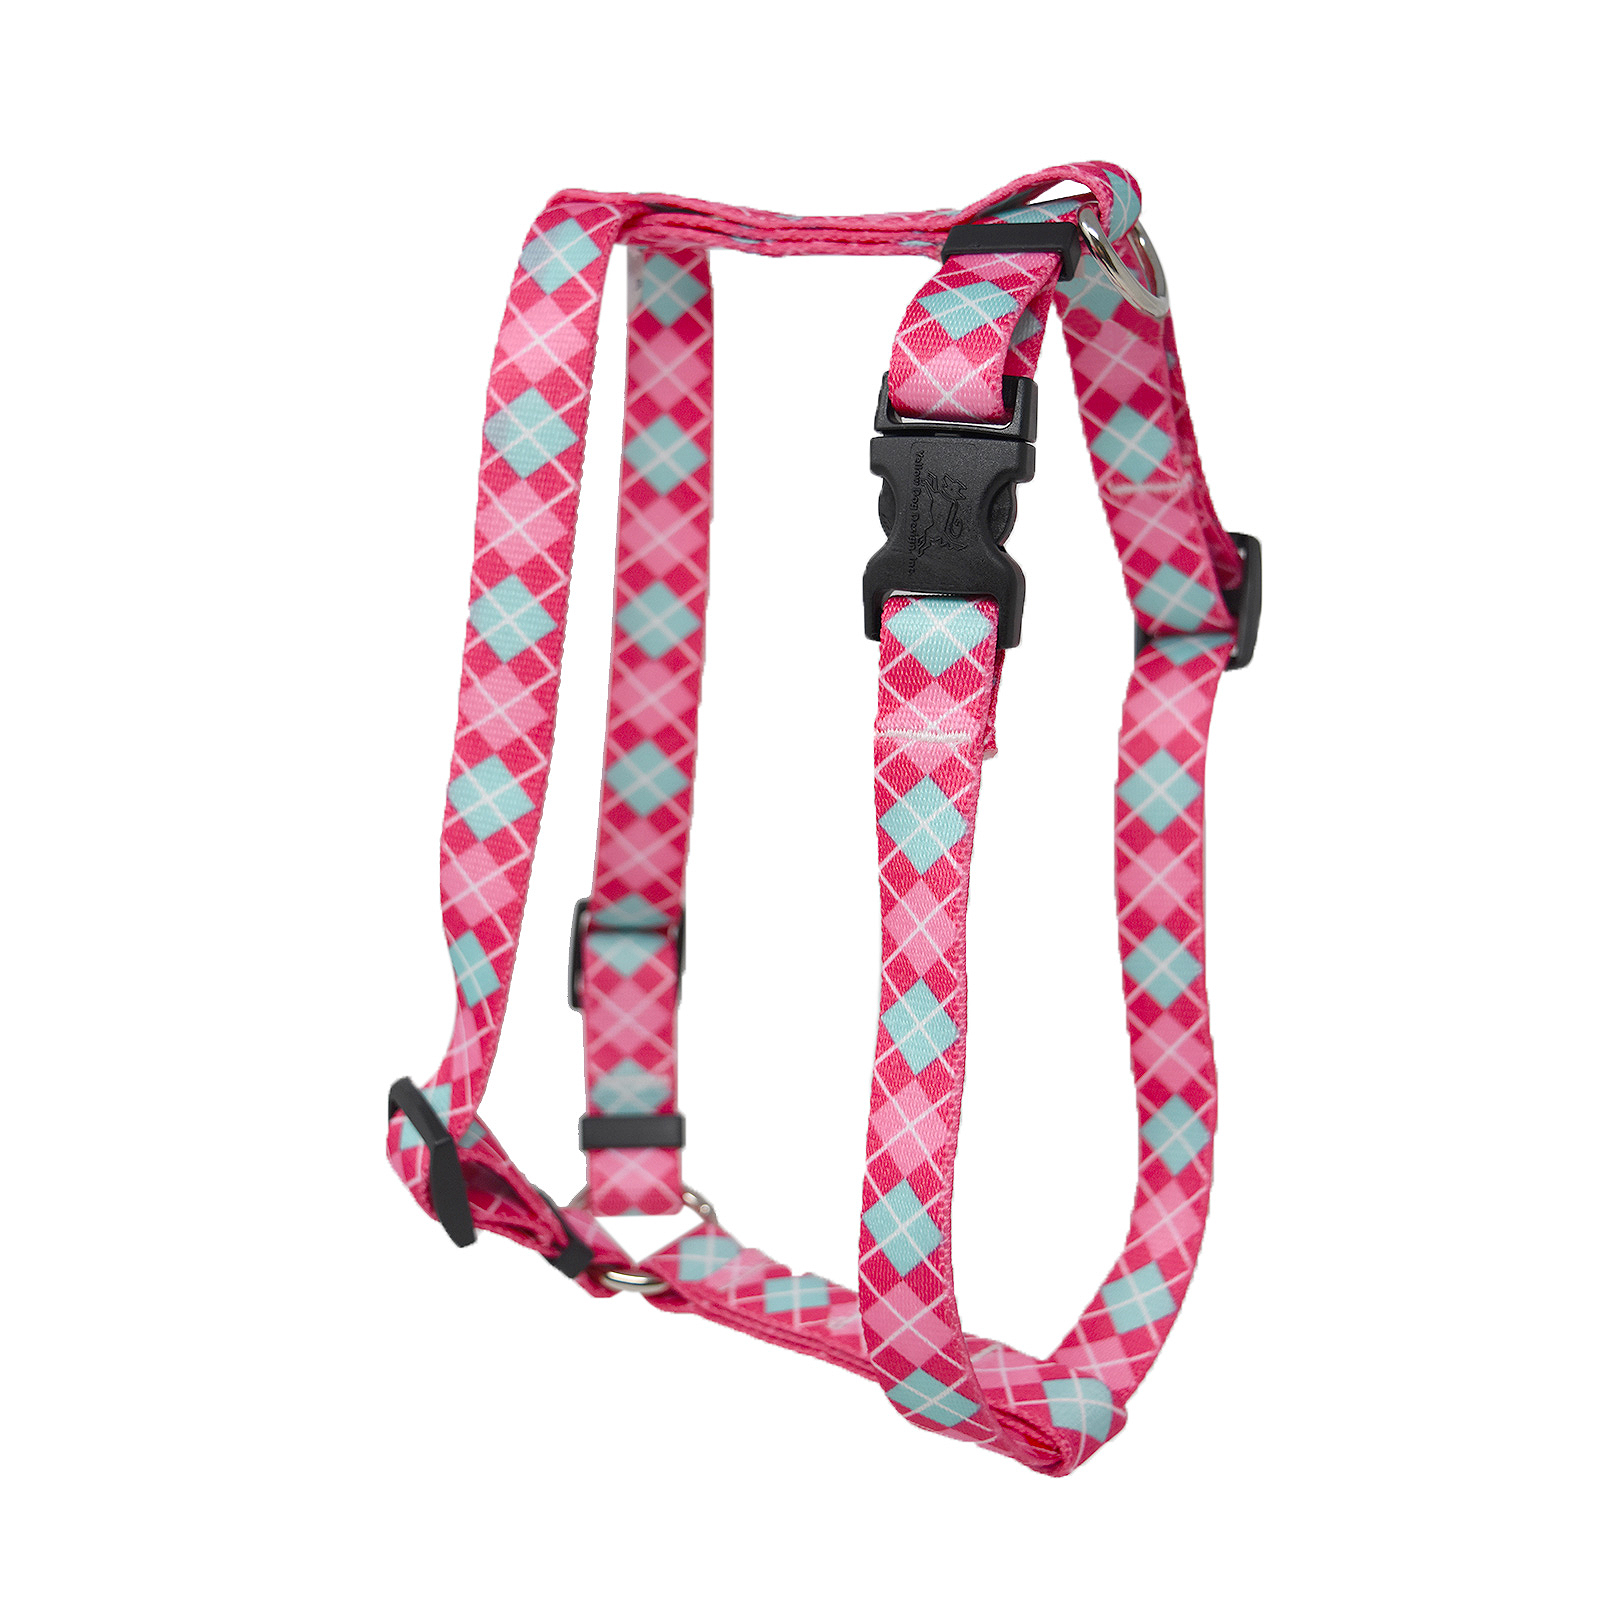 Magenta and Light Blue Argyle Roman H Harness